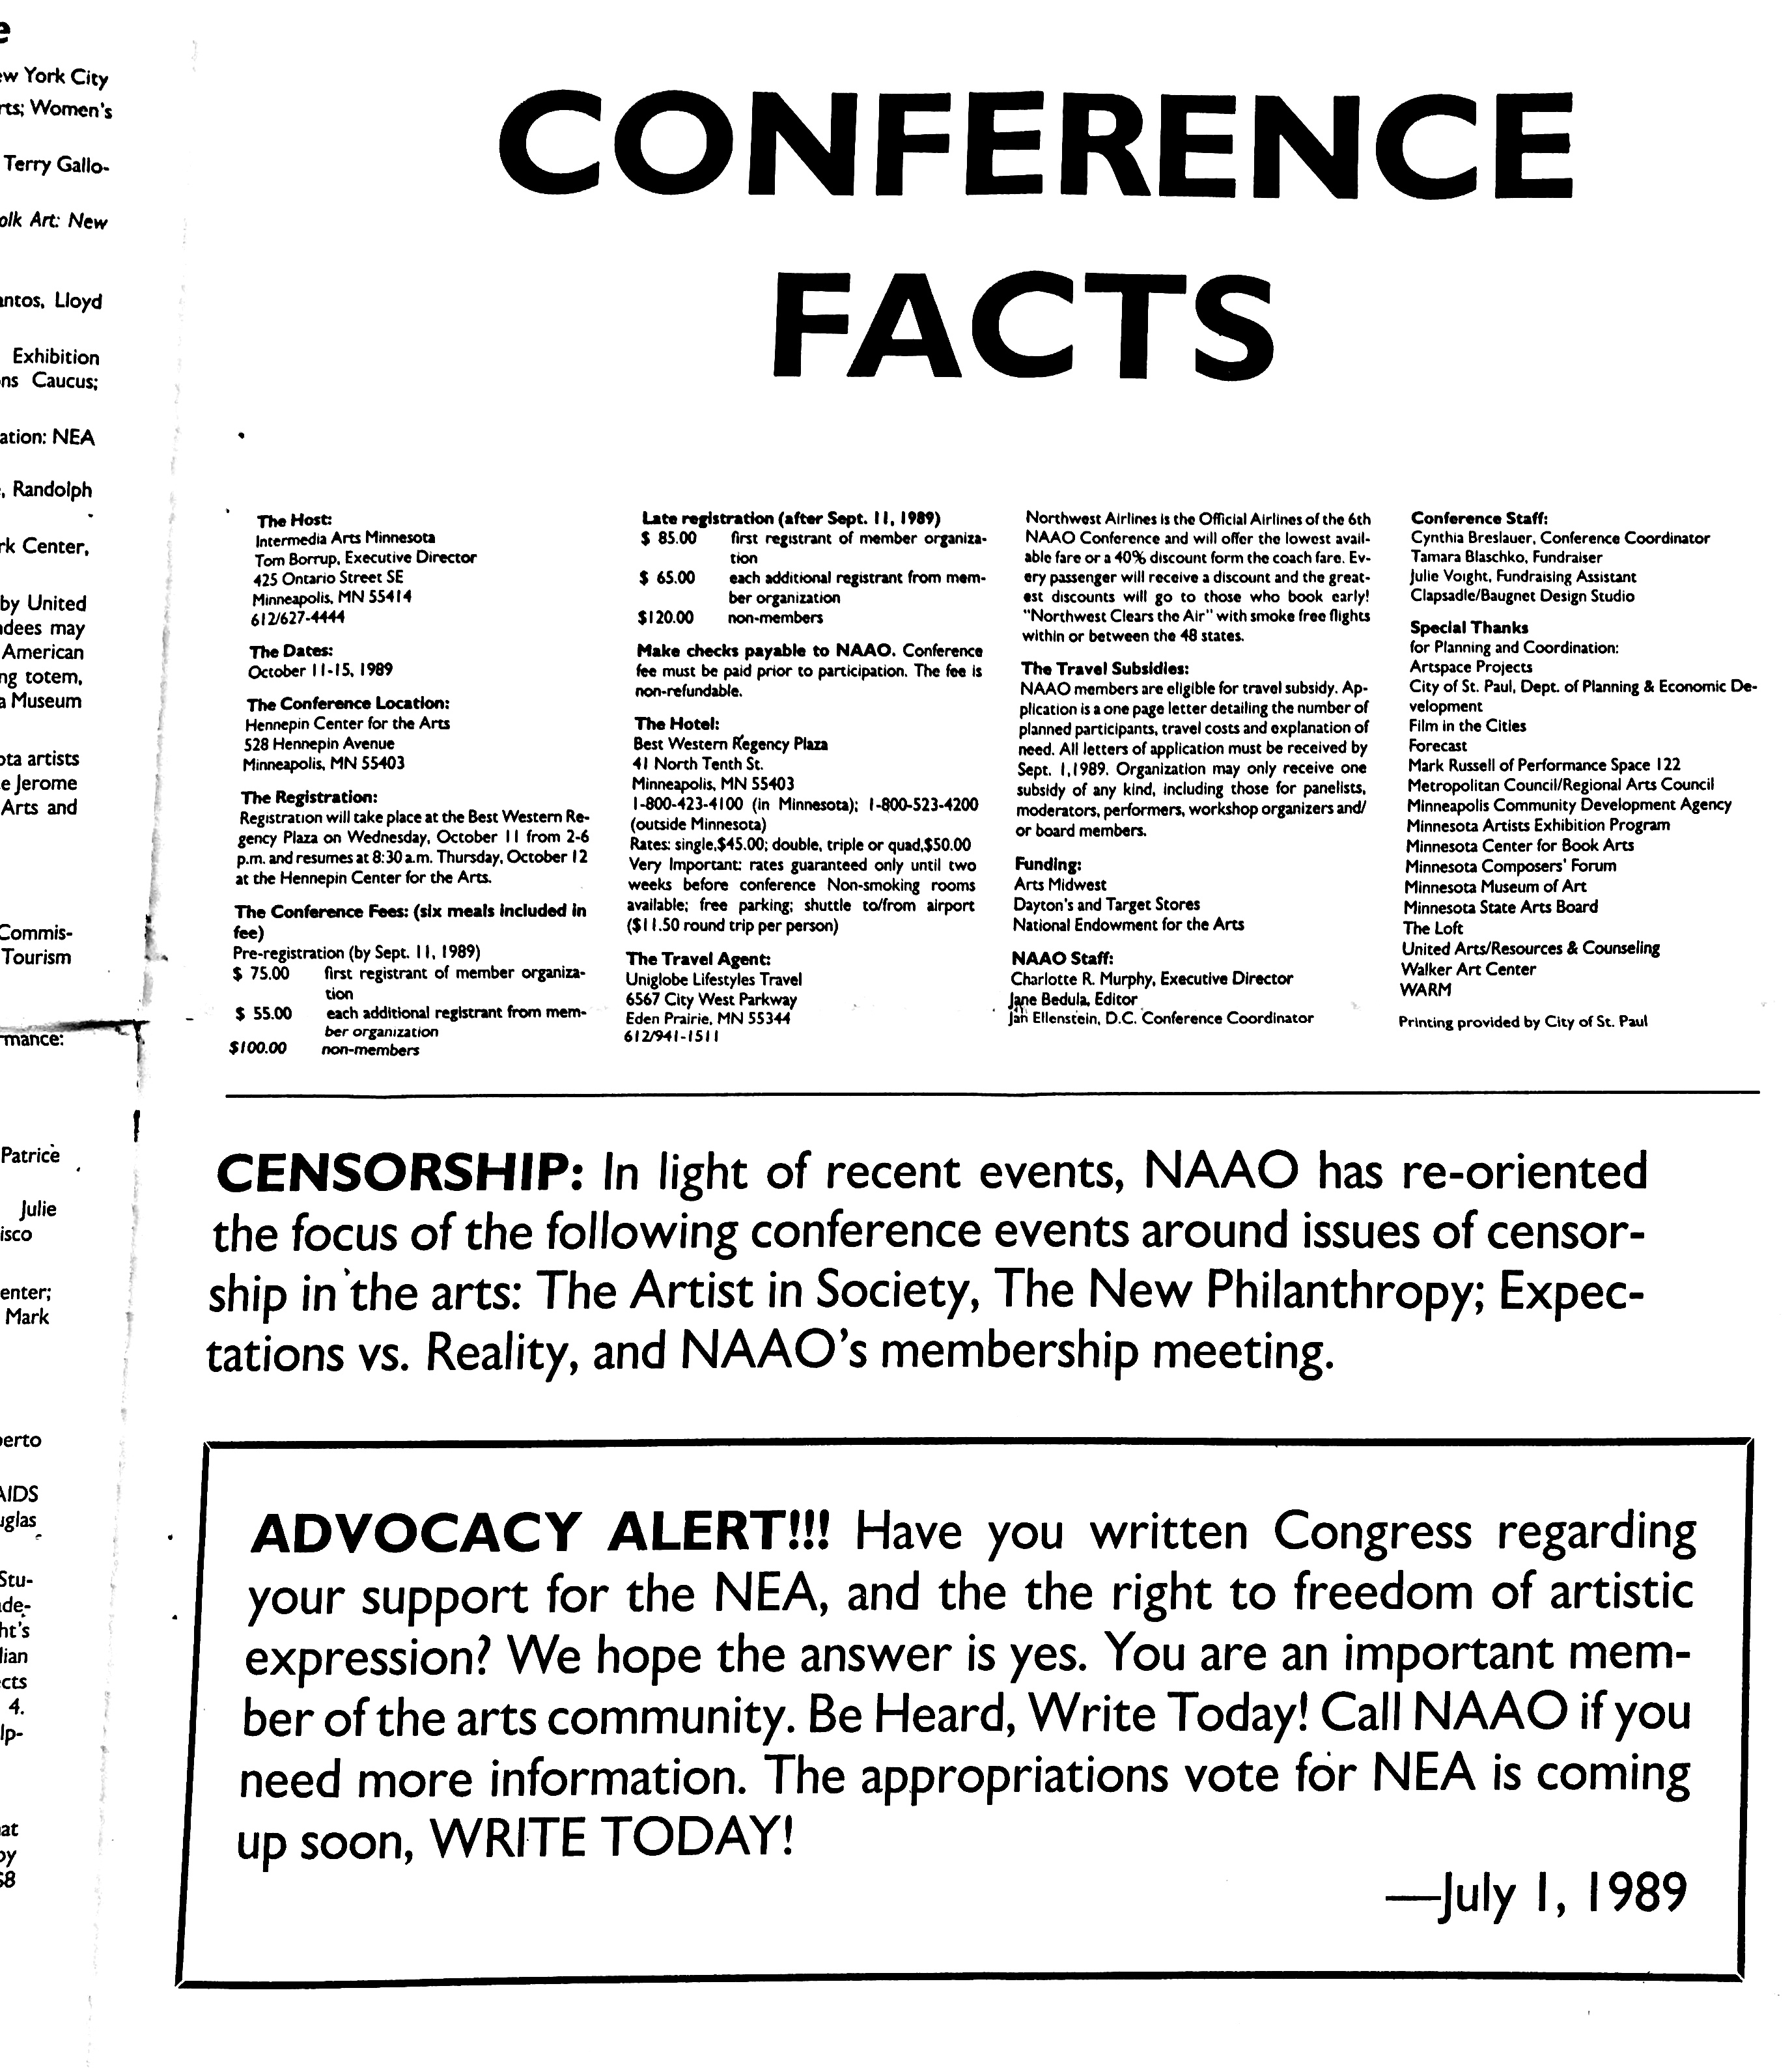 October 11-15, 1989 - 6th NAAO Conference Page 3.jpg